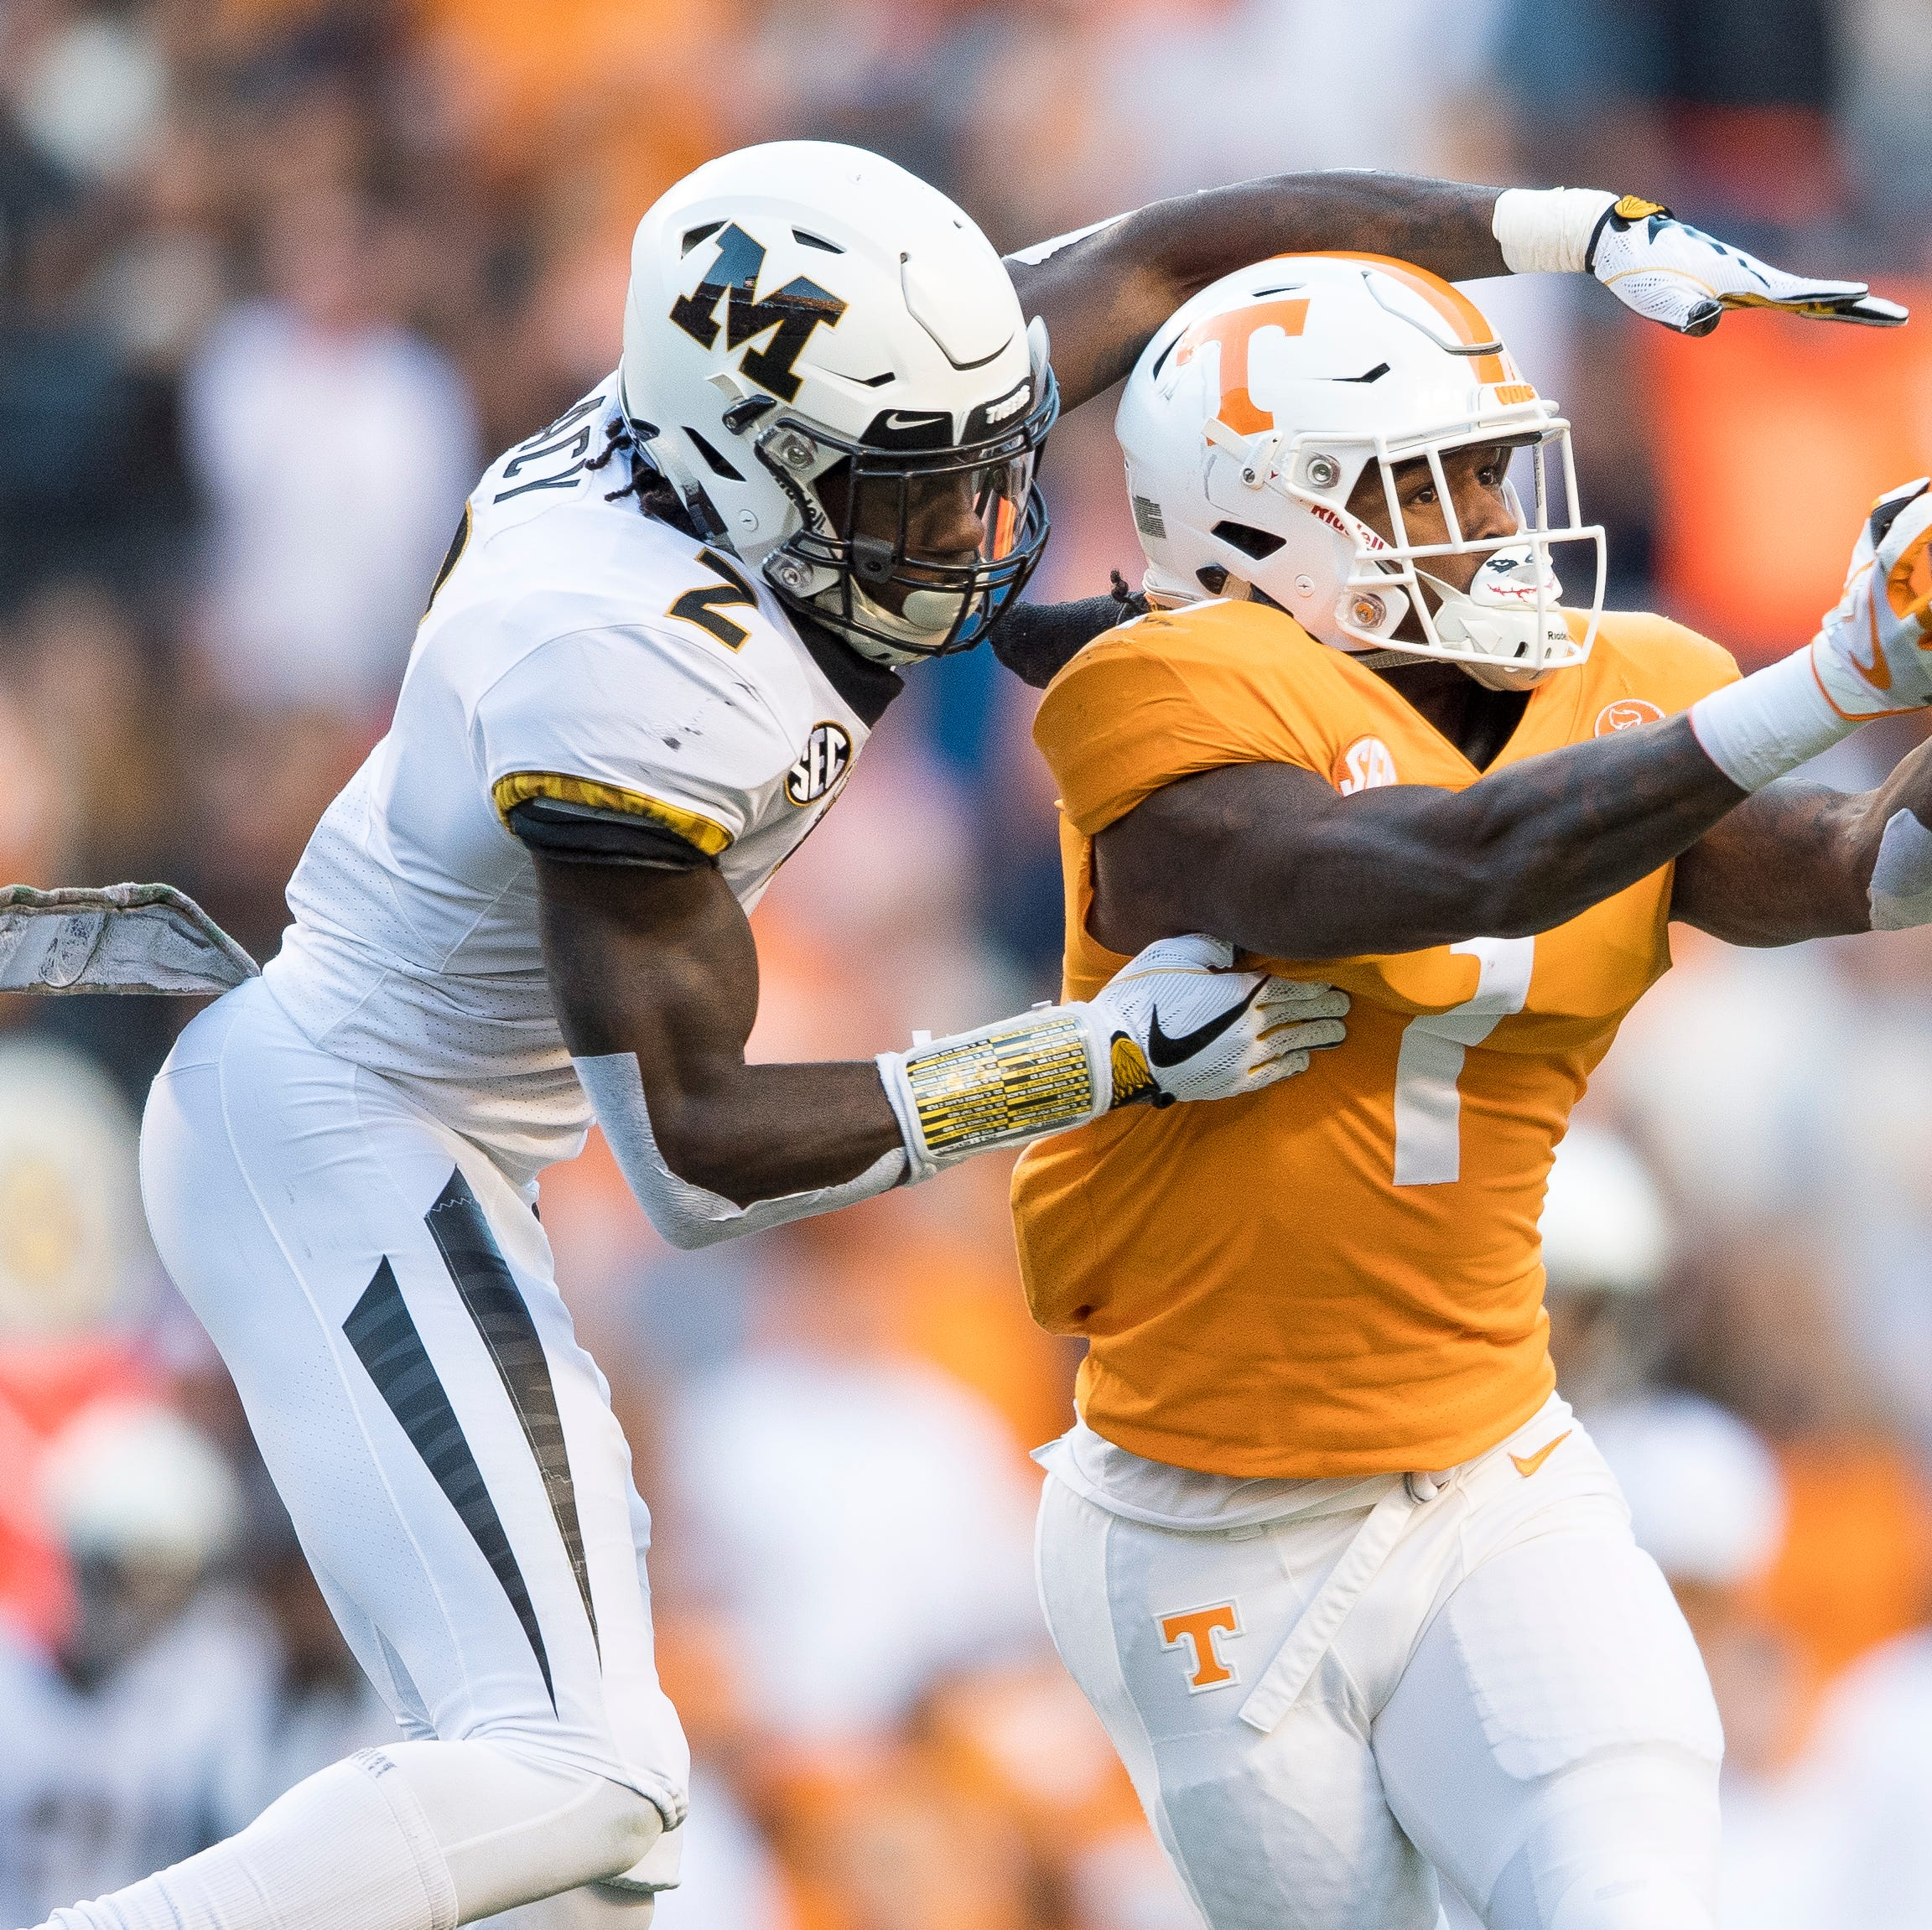 Does Tennessee football have a dominant receiver ready to emerge?